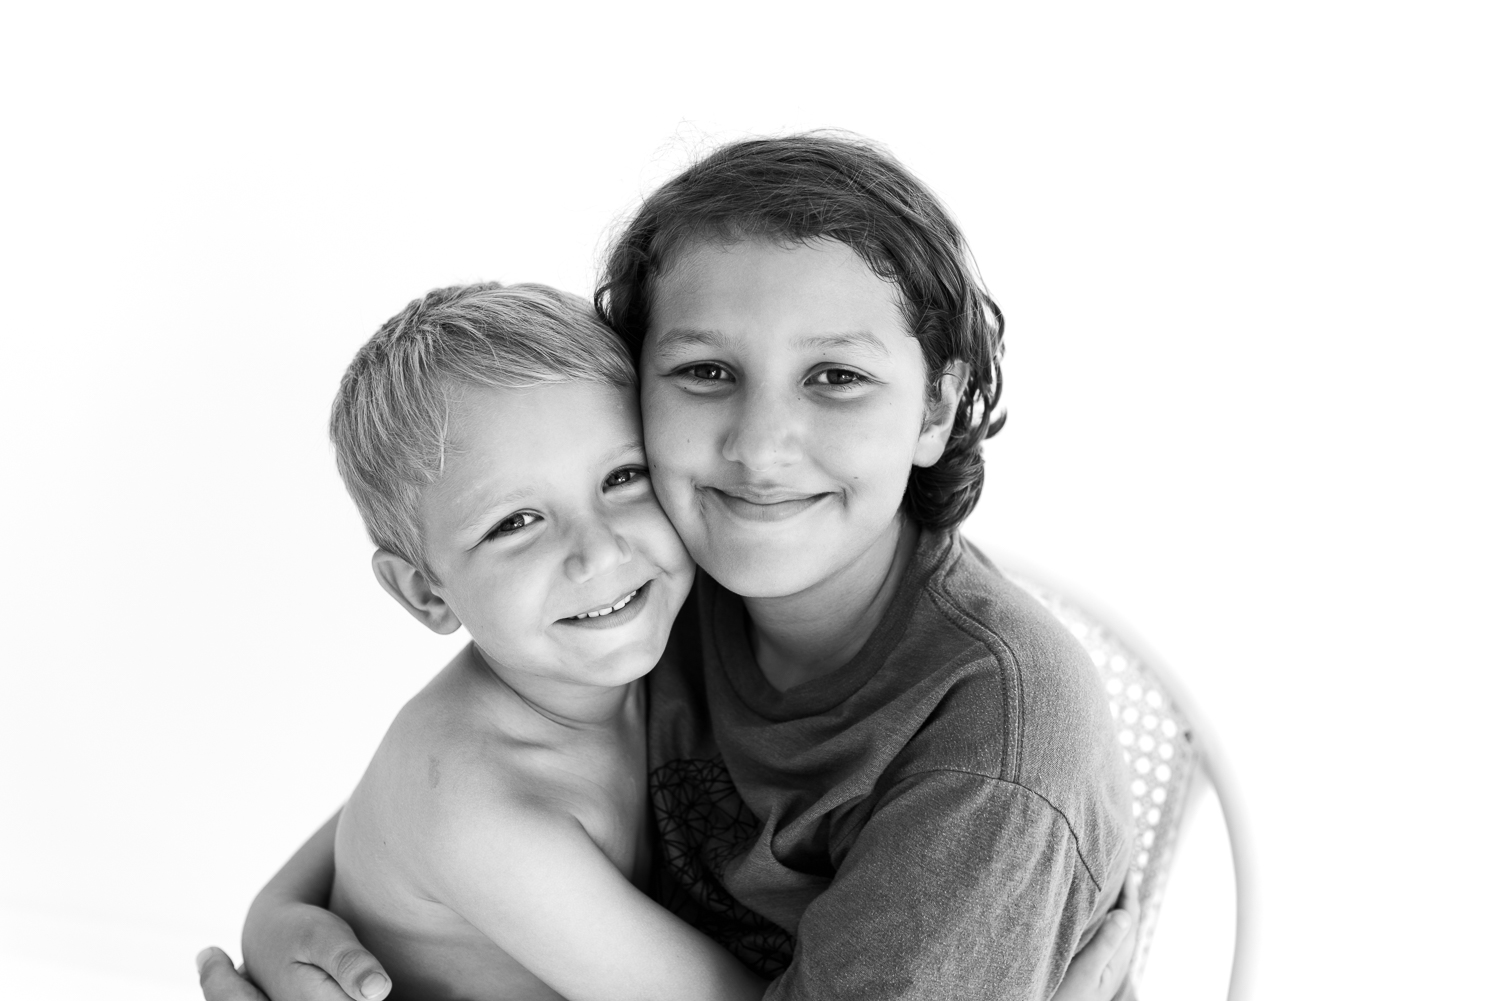 Black and white image of two brothers close up smiling and hugging each other